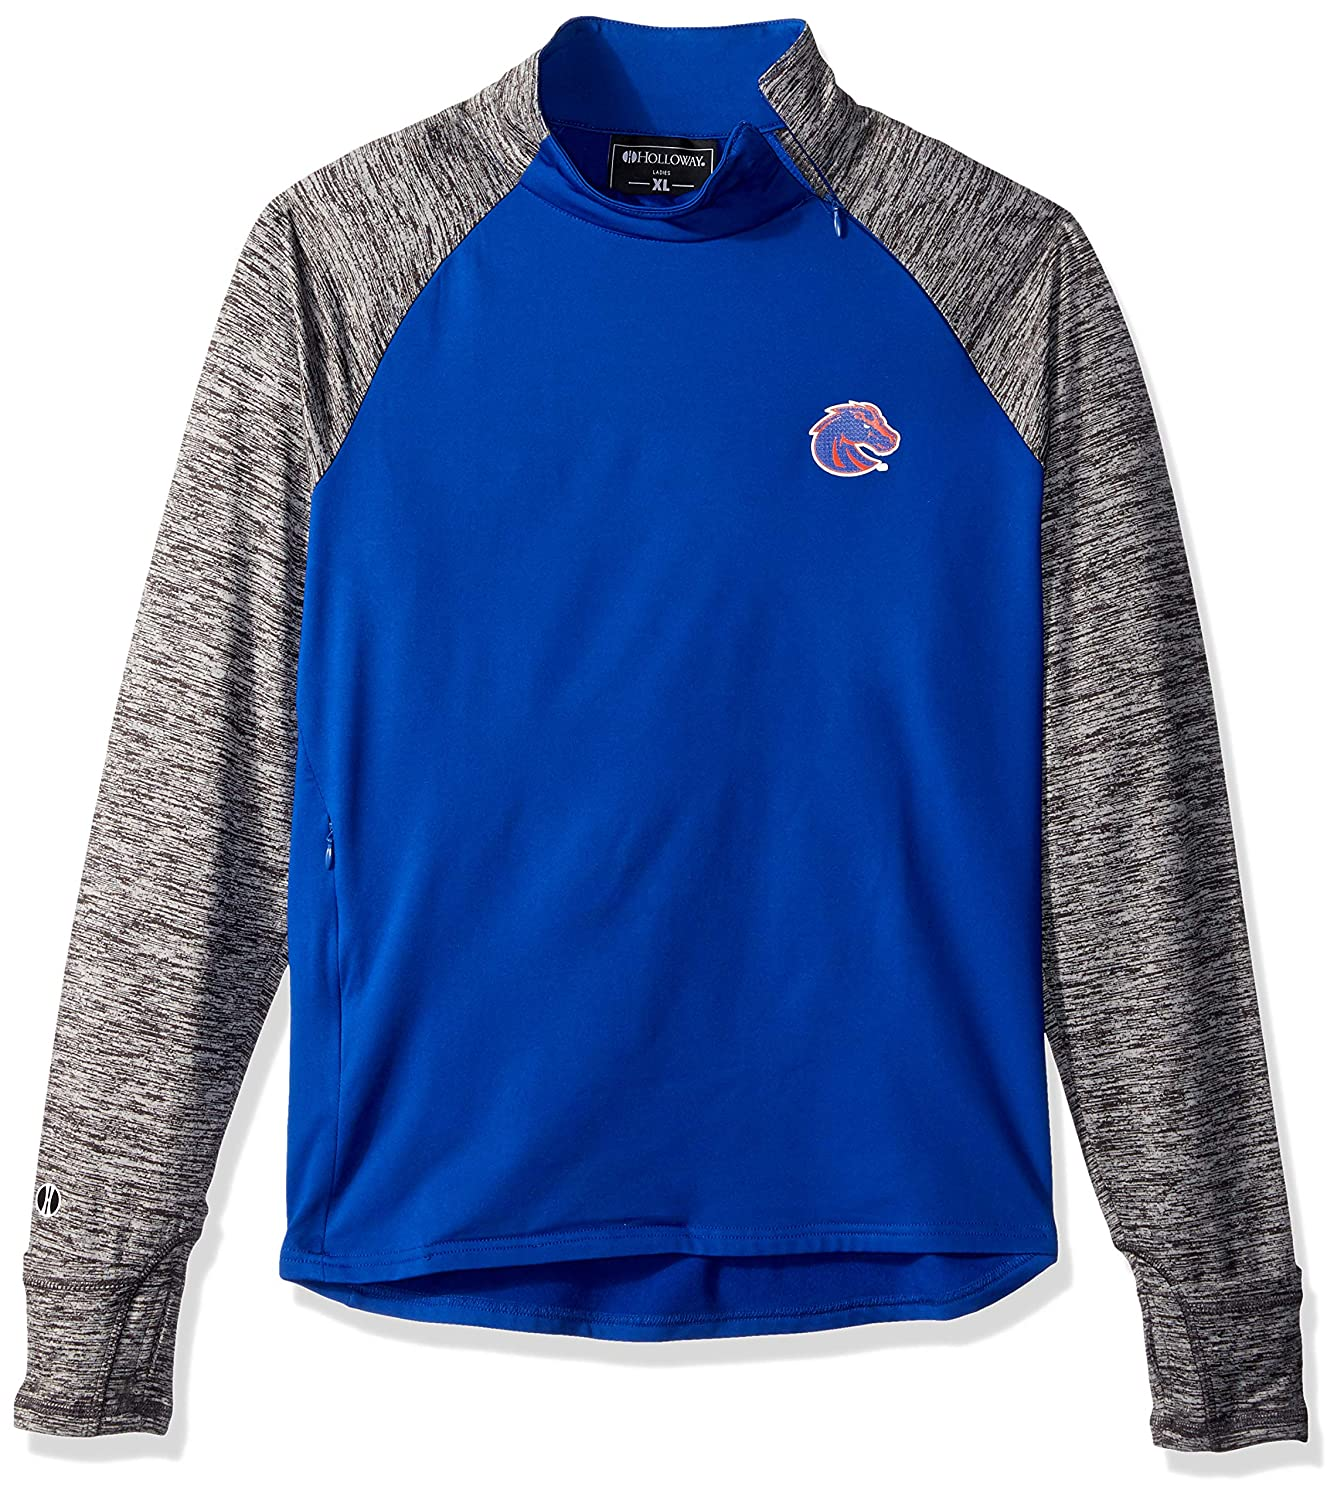 Ouray Sportswear NCAA Navy Womens Affirm Pullover Jacket